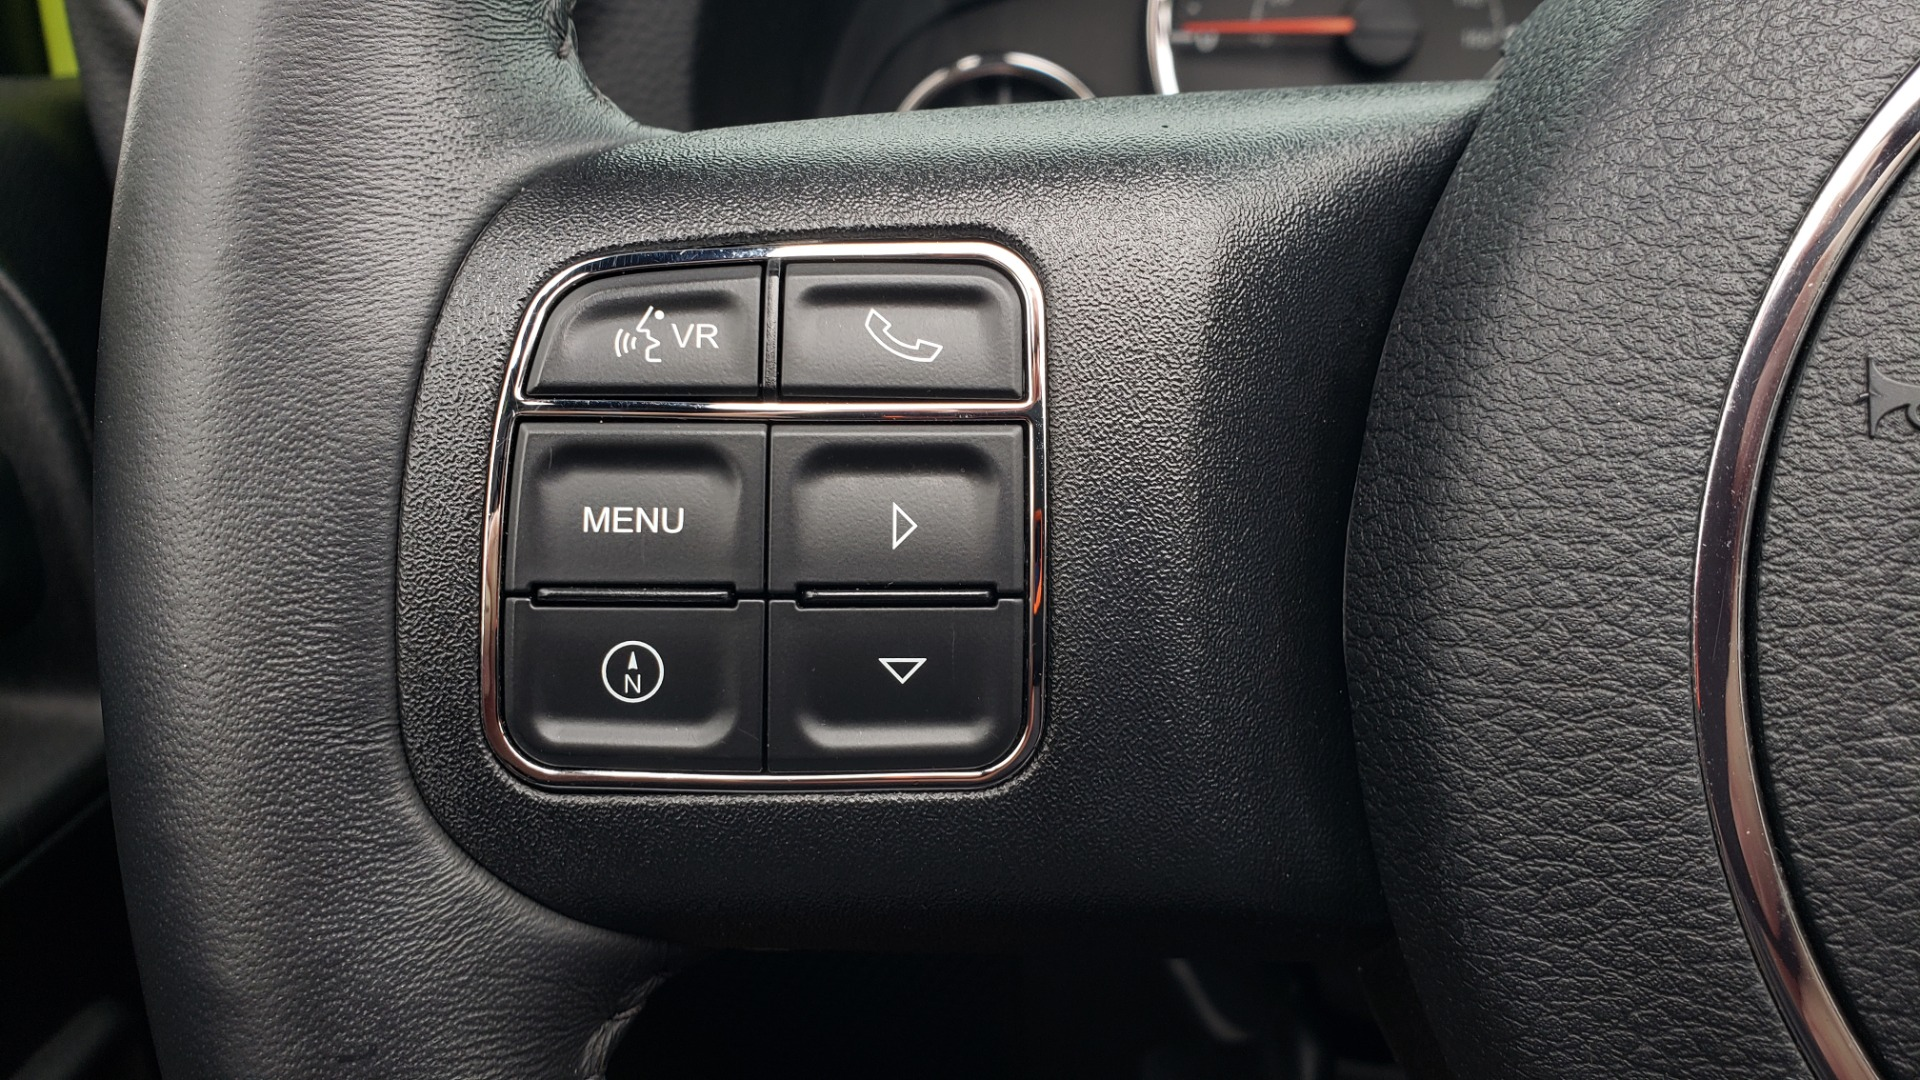 Used 2016 Jeep WRANGLER UNLIMITED SPORT 4X4 / POWER TOP / NAV / HTD STS / REARVIEW for sale $36,999 at Formula Imports in Charlotte NC 28227 56